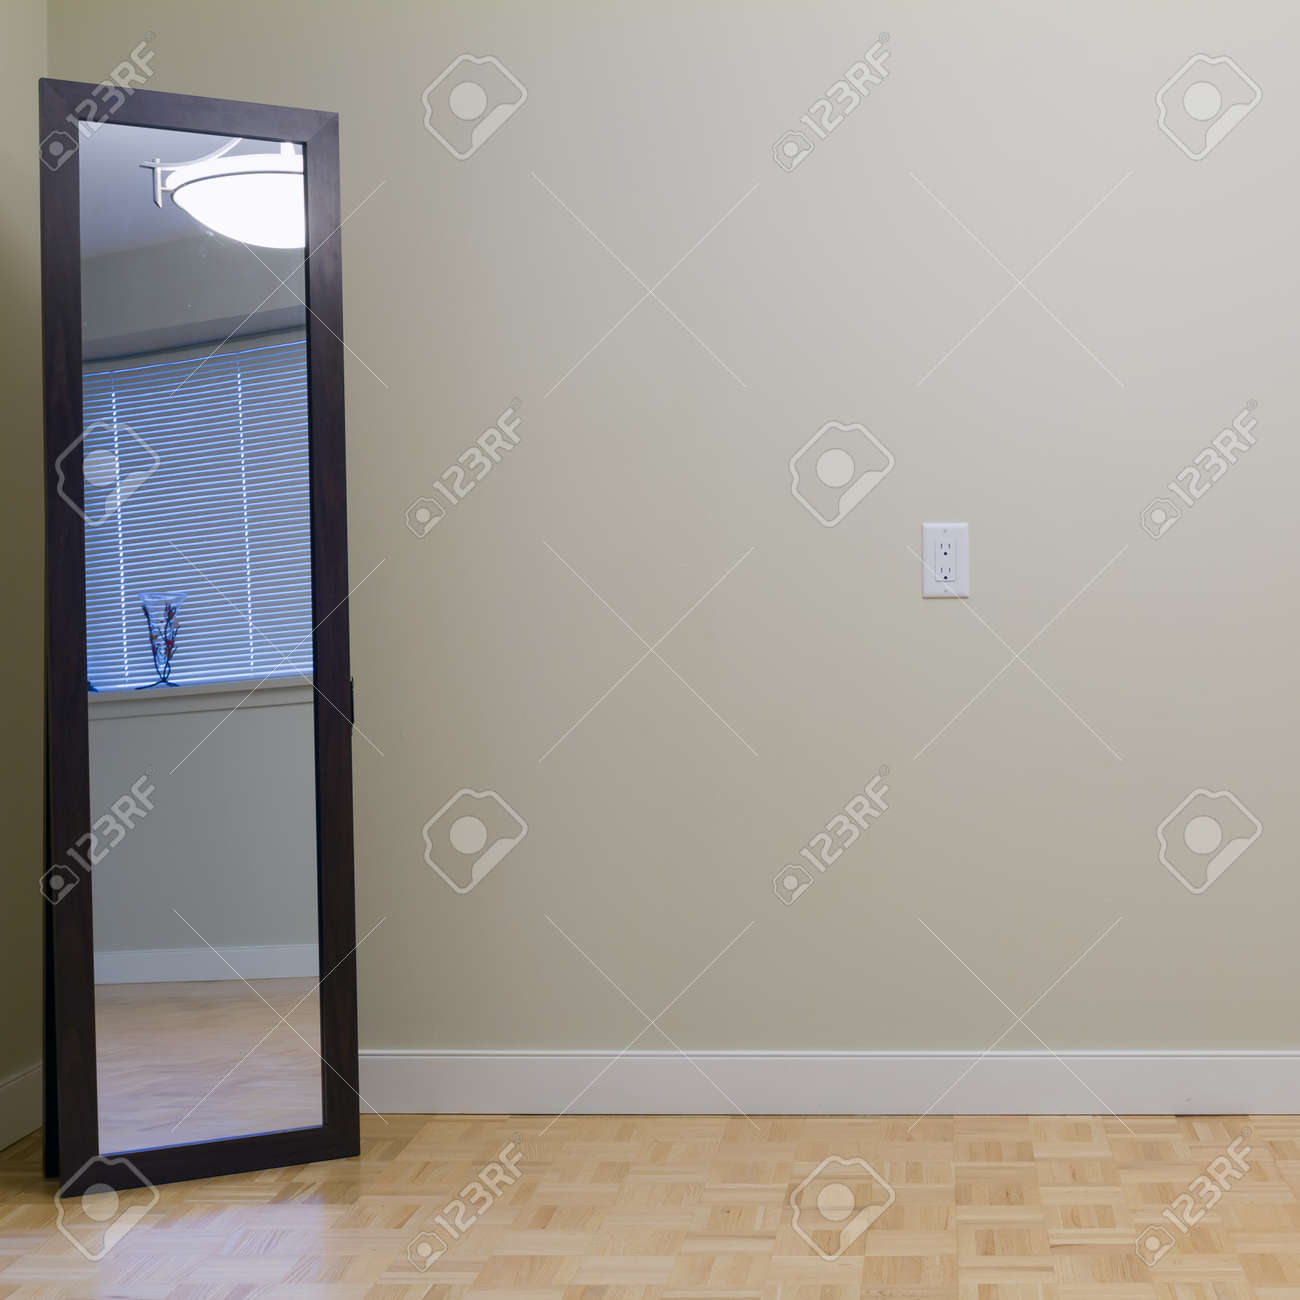 Mirror In Living Room Unique Mirrors On Wall Ideas Cool And Best Ideas 7730 Mirror In